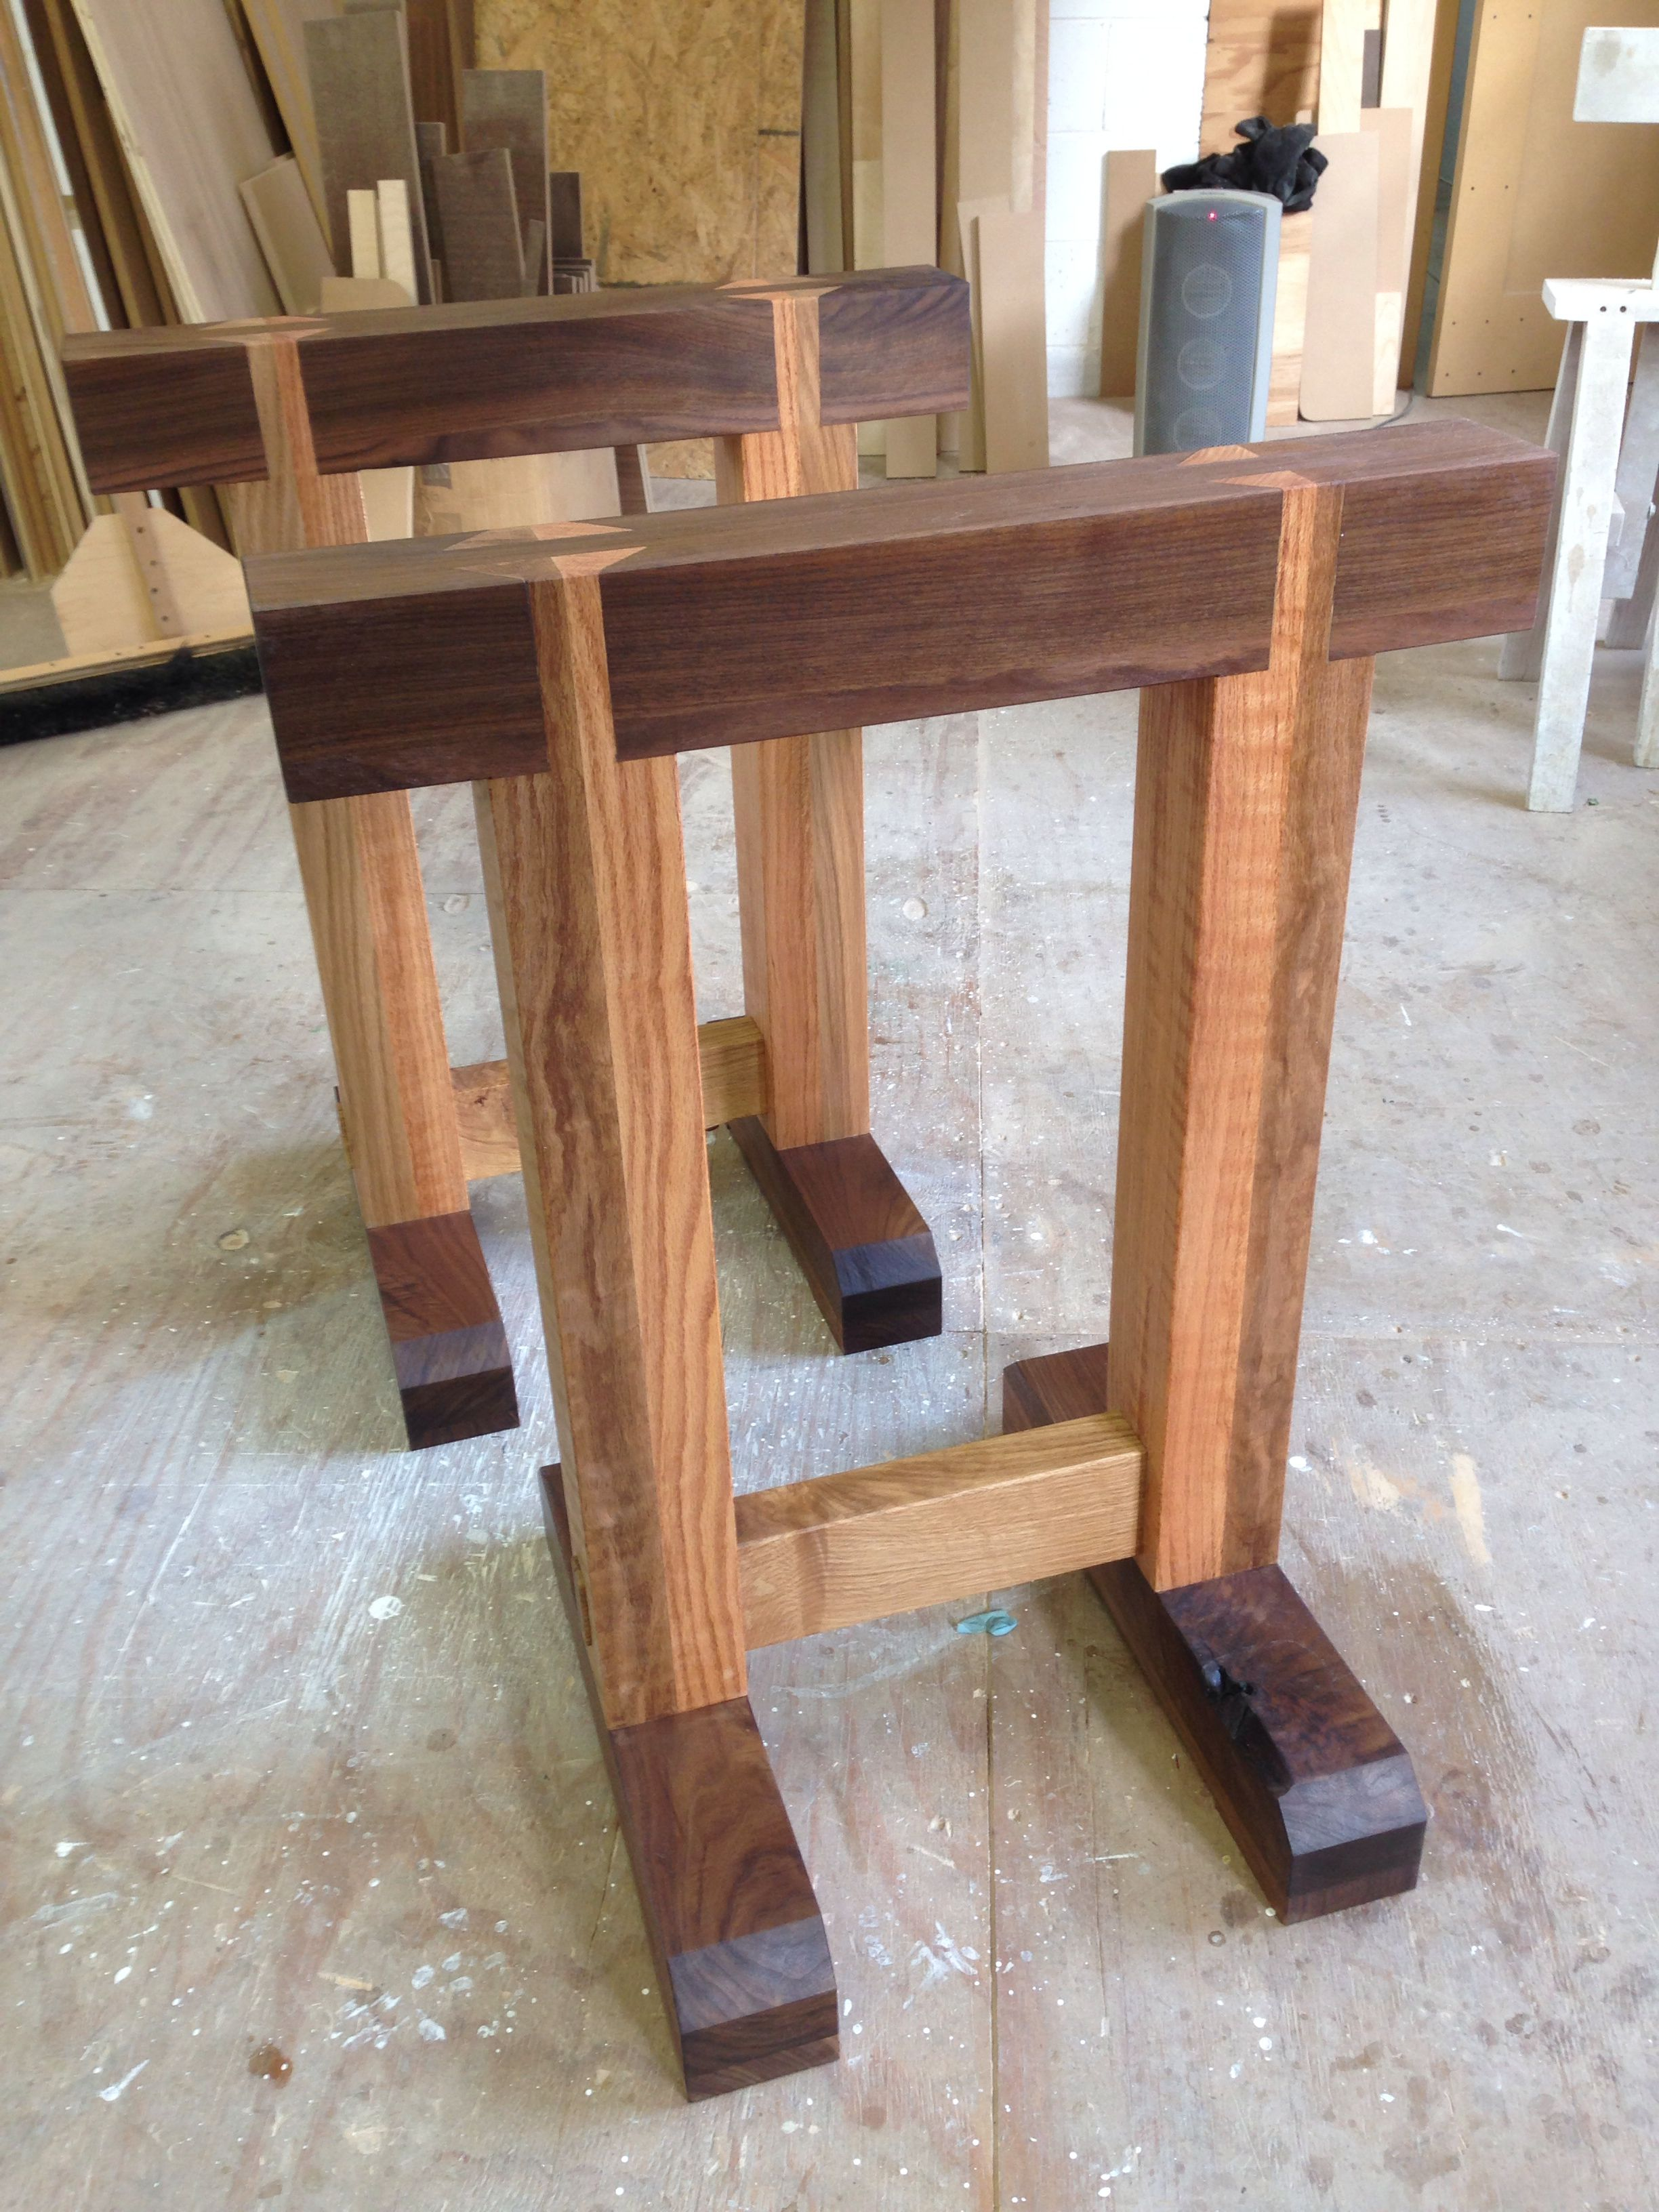 Diy Adjustable Table Legs Heavy Duty Sawhorse Can Maybe Make The Legs Adjustable